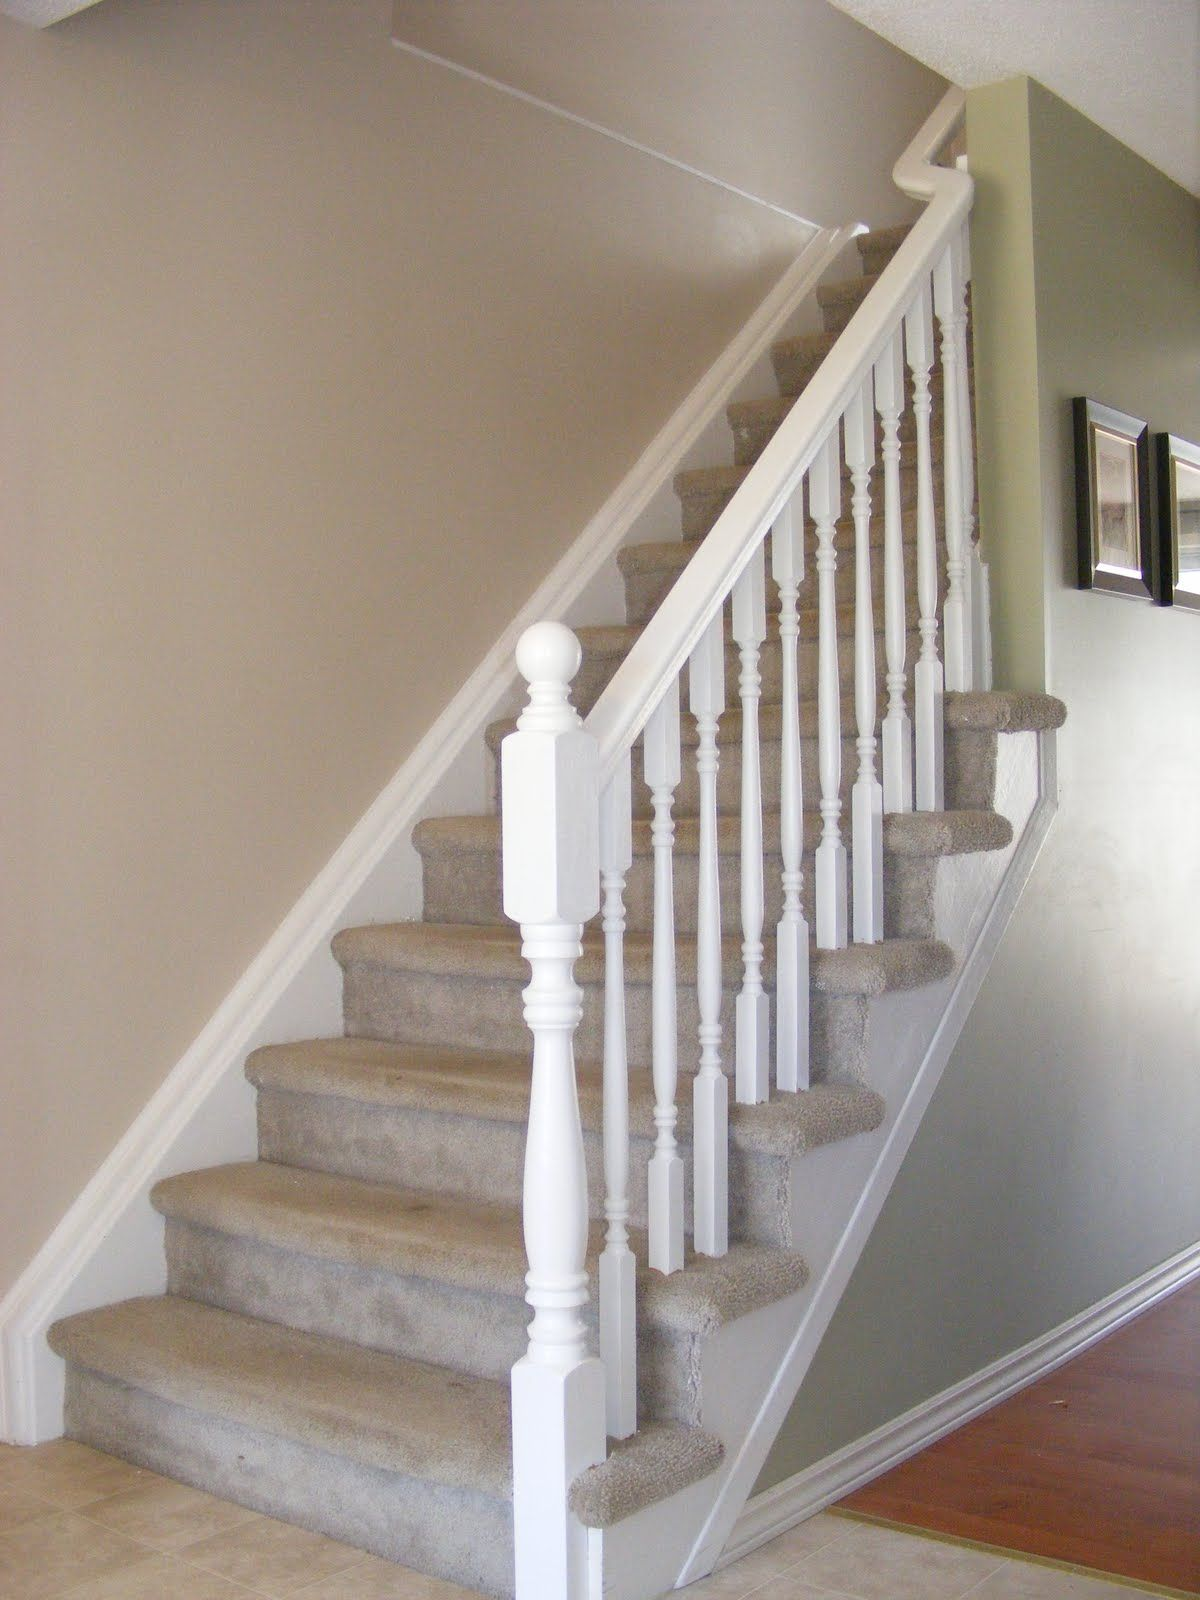 Explore The 24 Best Painted Stairs Ideas for Your New Home ...